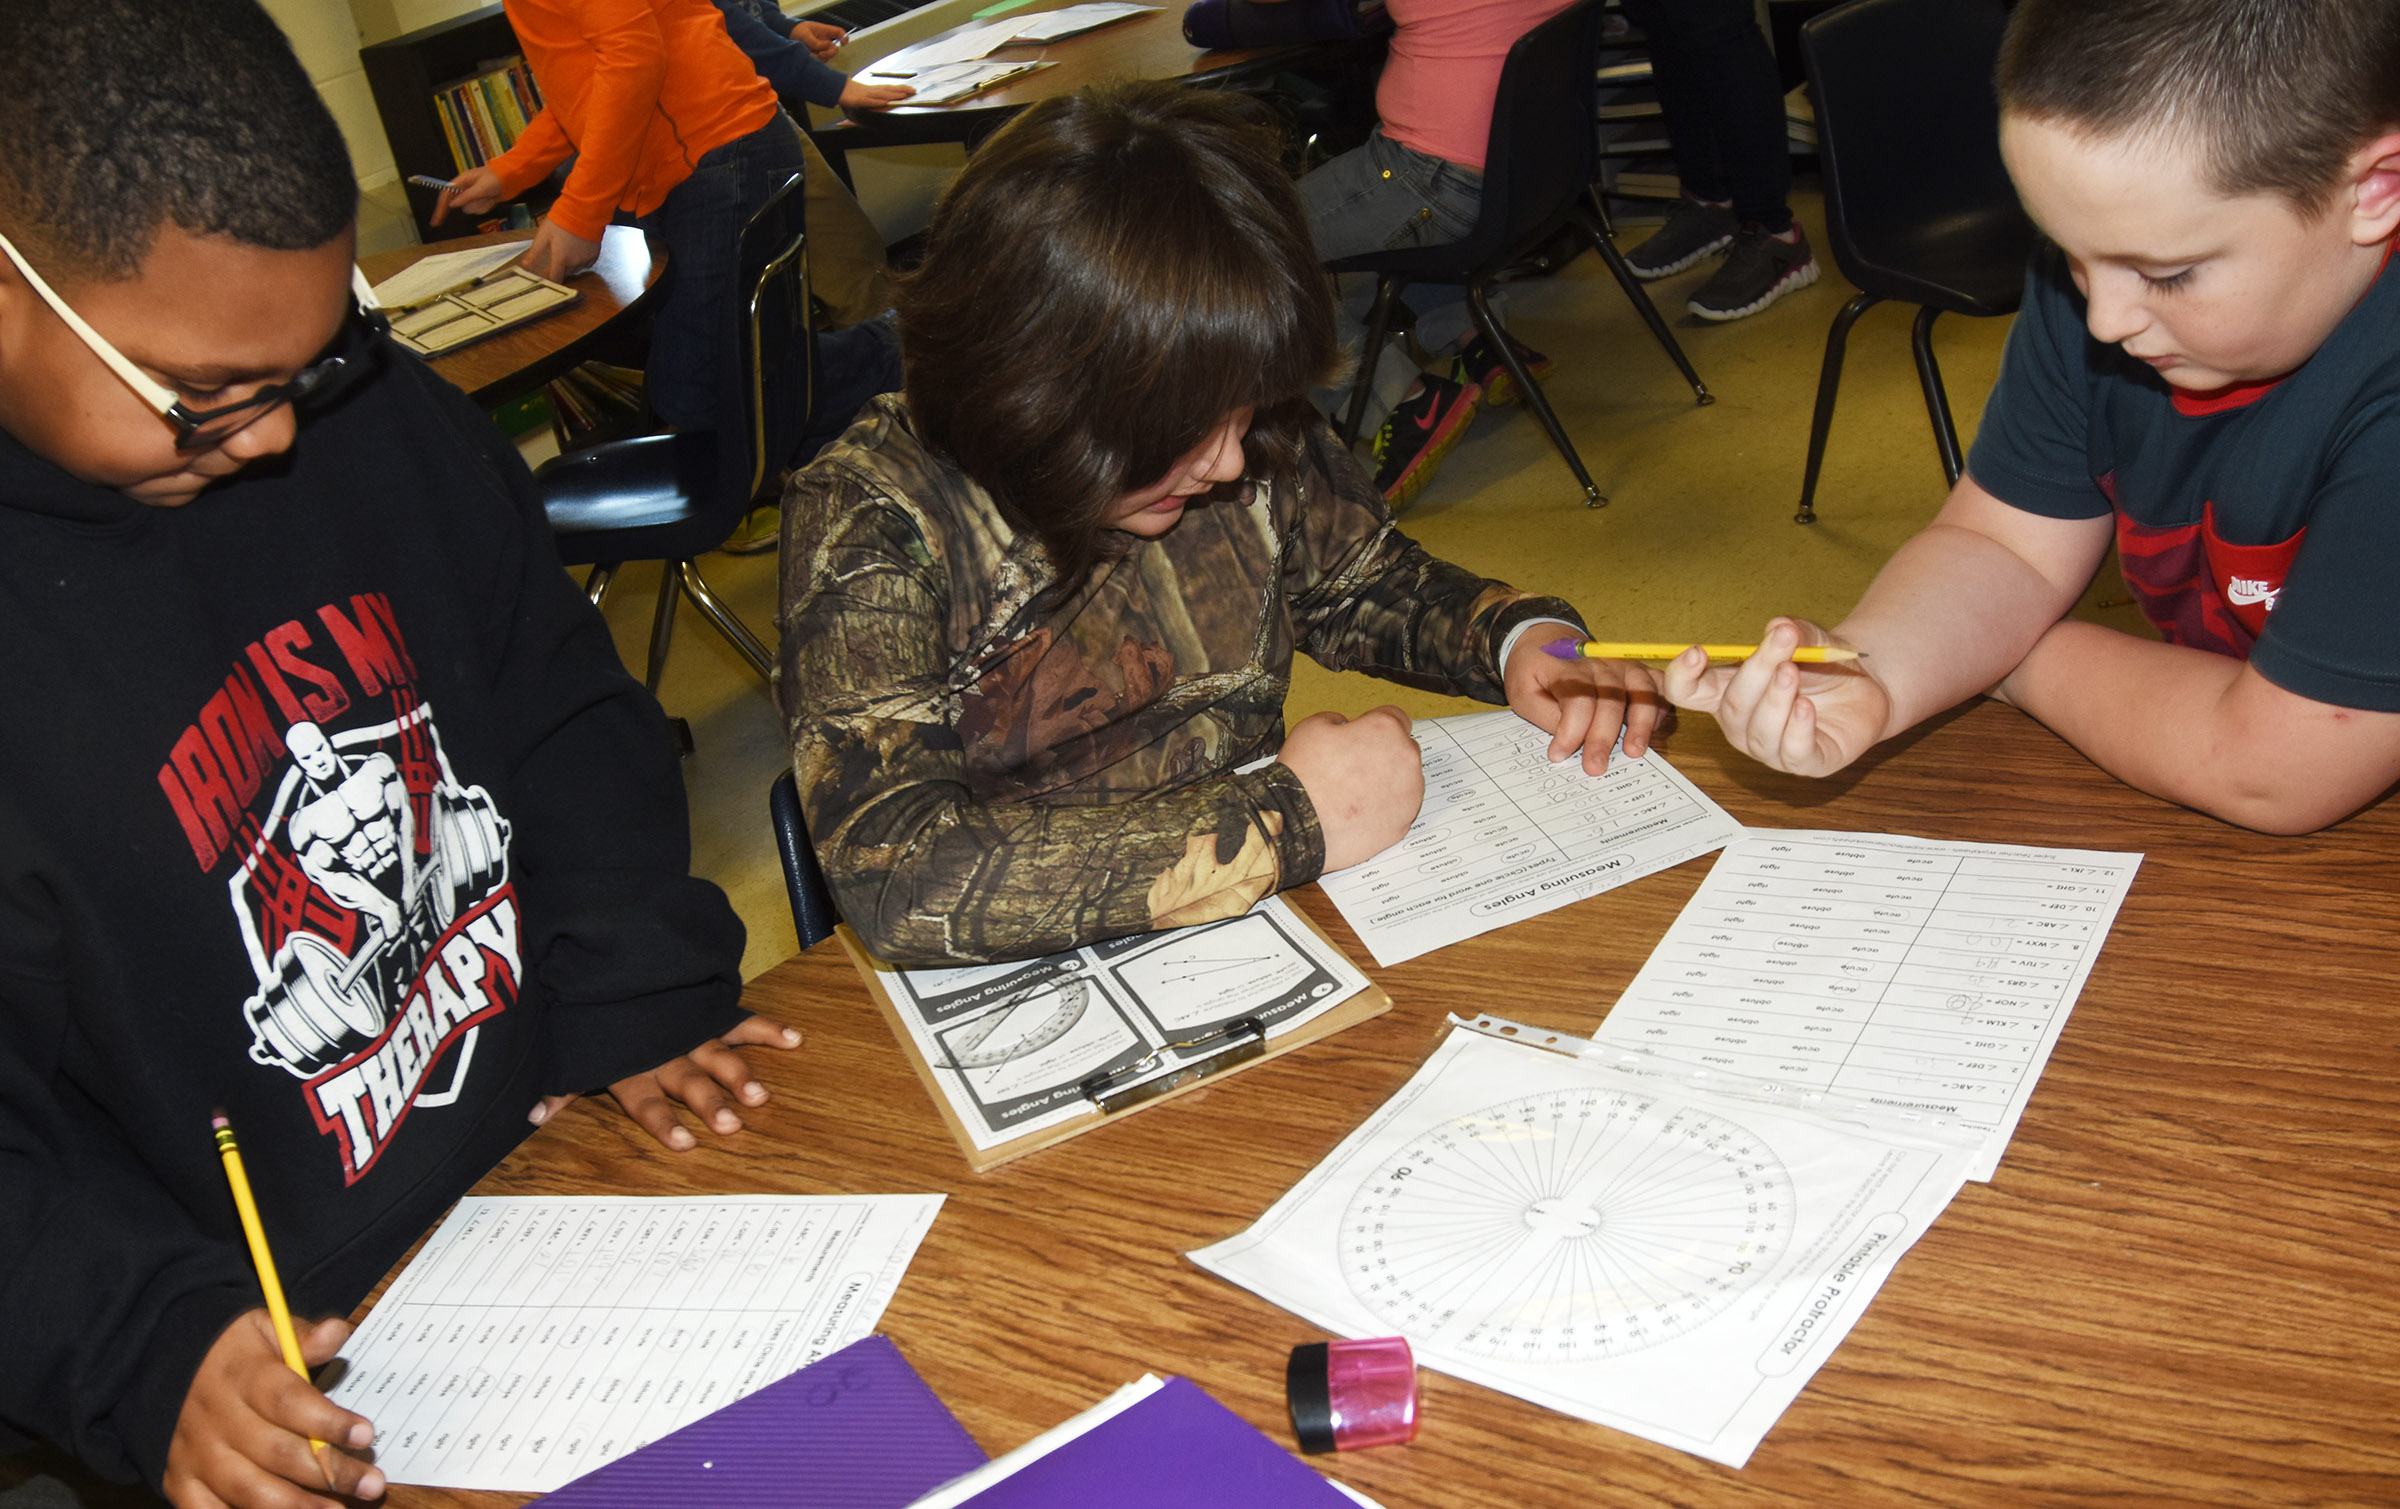 From left, CES fourth-graders Malikiah Spurling, Leanna Puckett and J.J. Scharbrough work together to measure an angle.